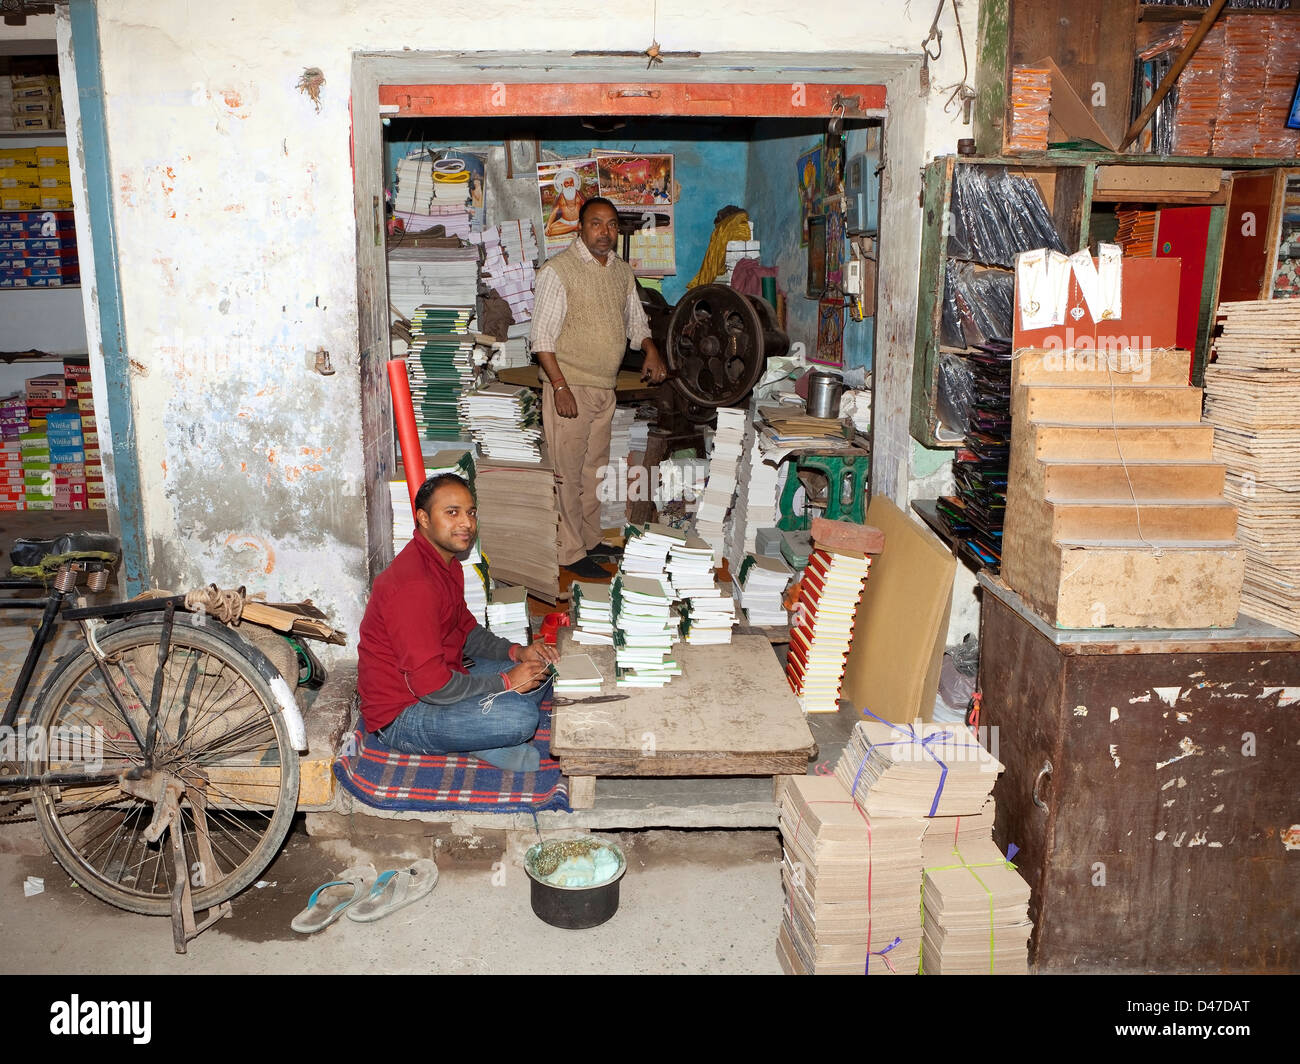 Two men busy at their book binding business in their small shop on the streets of Amritsar Punjab India - Stock Image